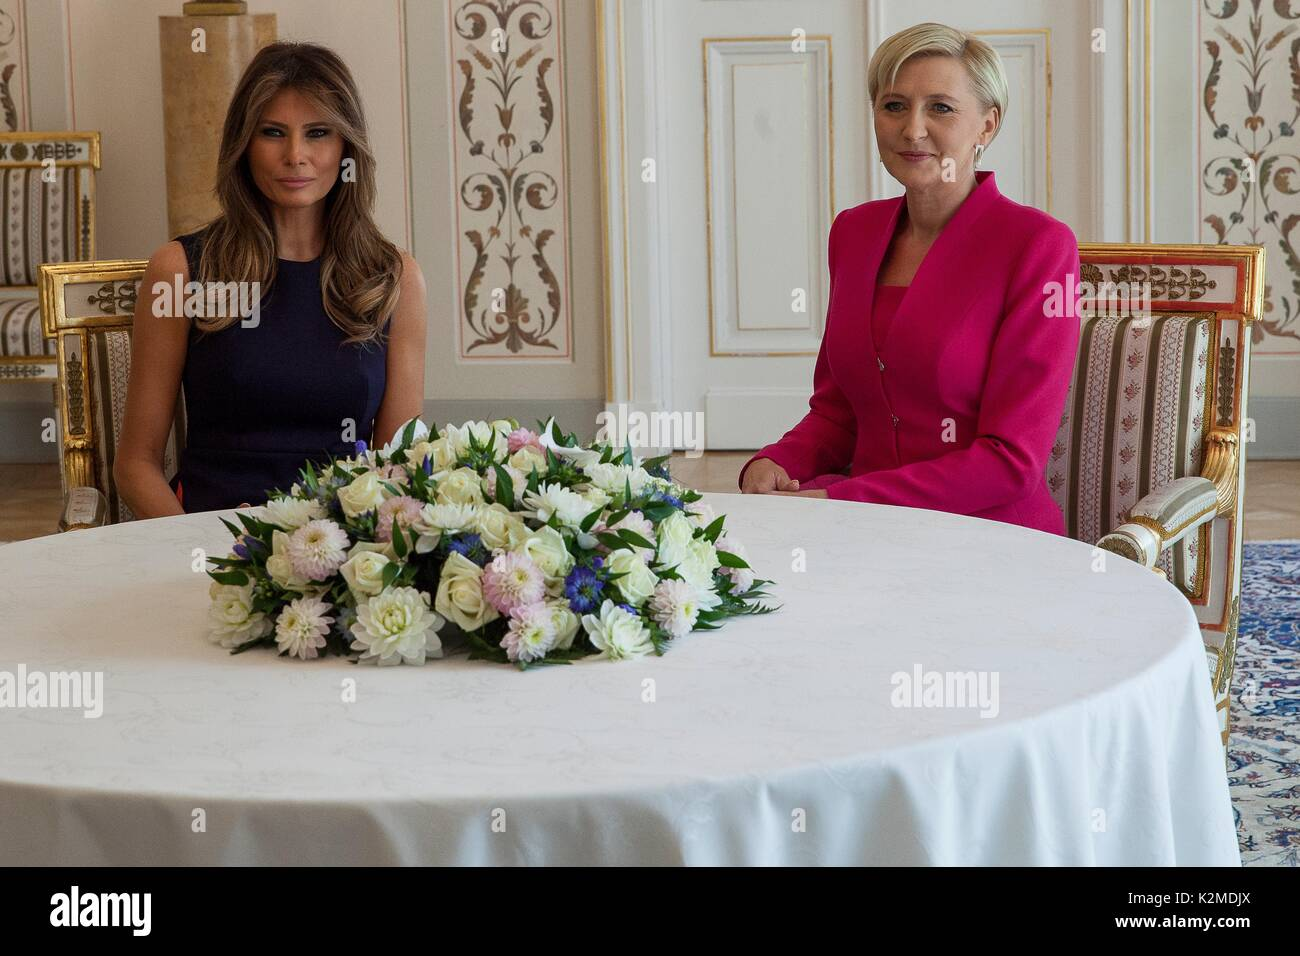 U.S. First Lady Melania Trump, left, with Polish First Lady Agata Kornhauser-Duda during a meeting at the Belweder Palace July 6, 2017 in Warsaw, Poland. - Stock Image